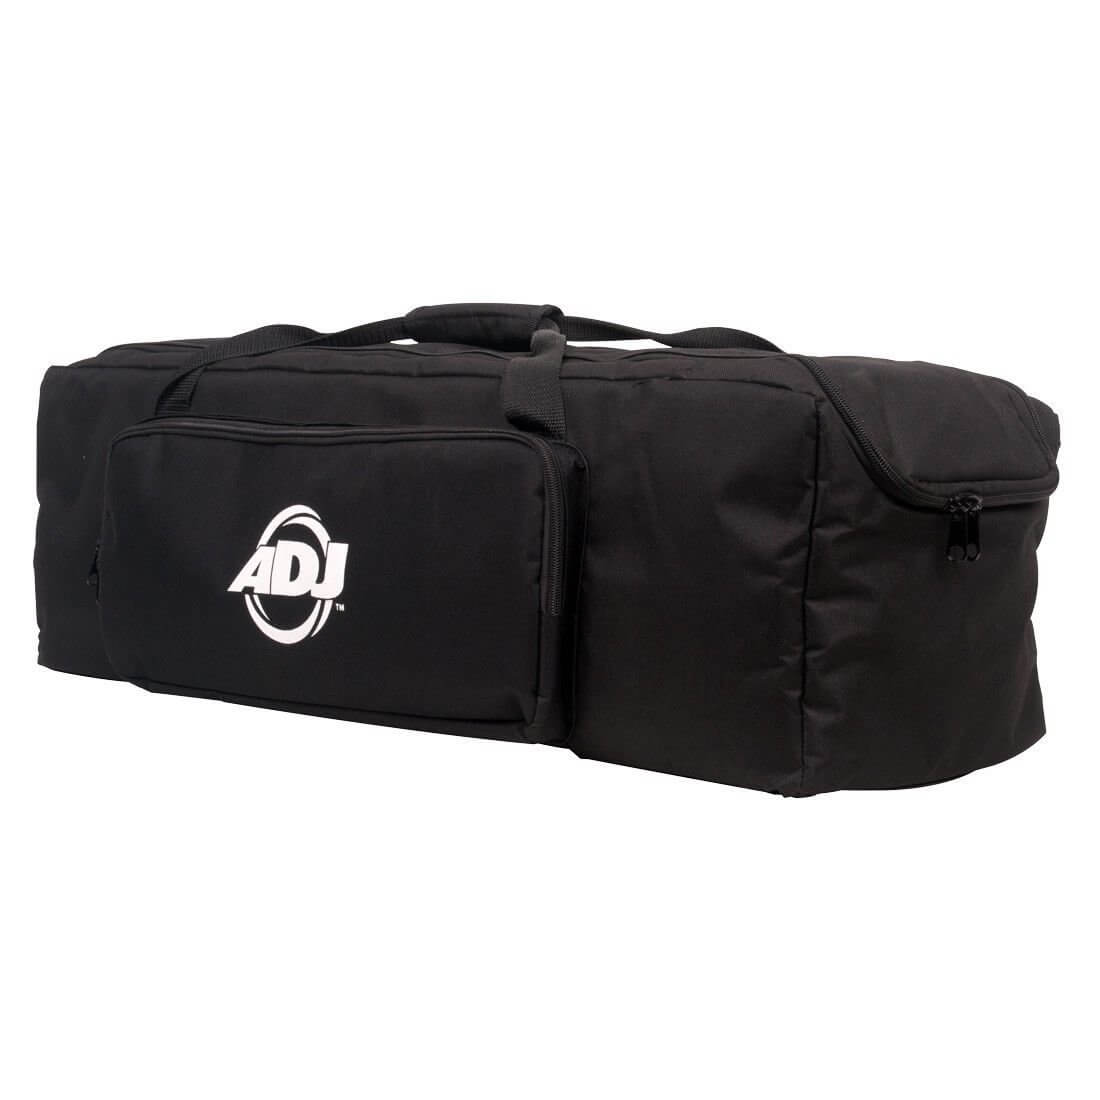 ADJ Flat Bag 8 Soft Padded Case for Slim Par Can LED Lighting flight case